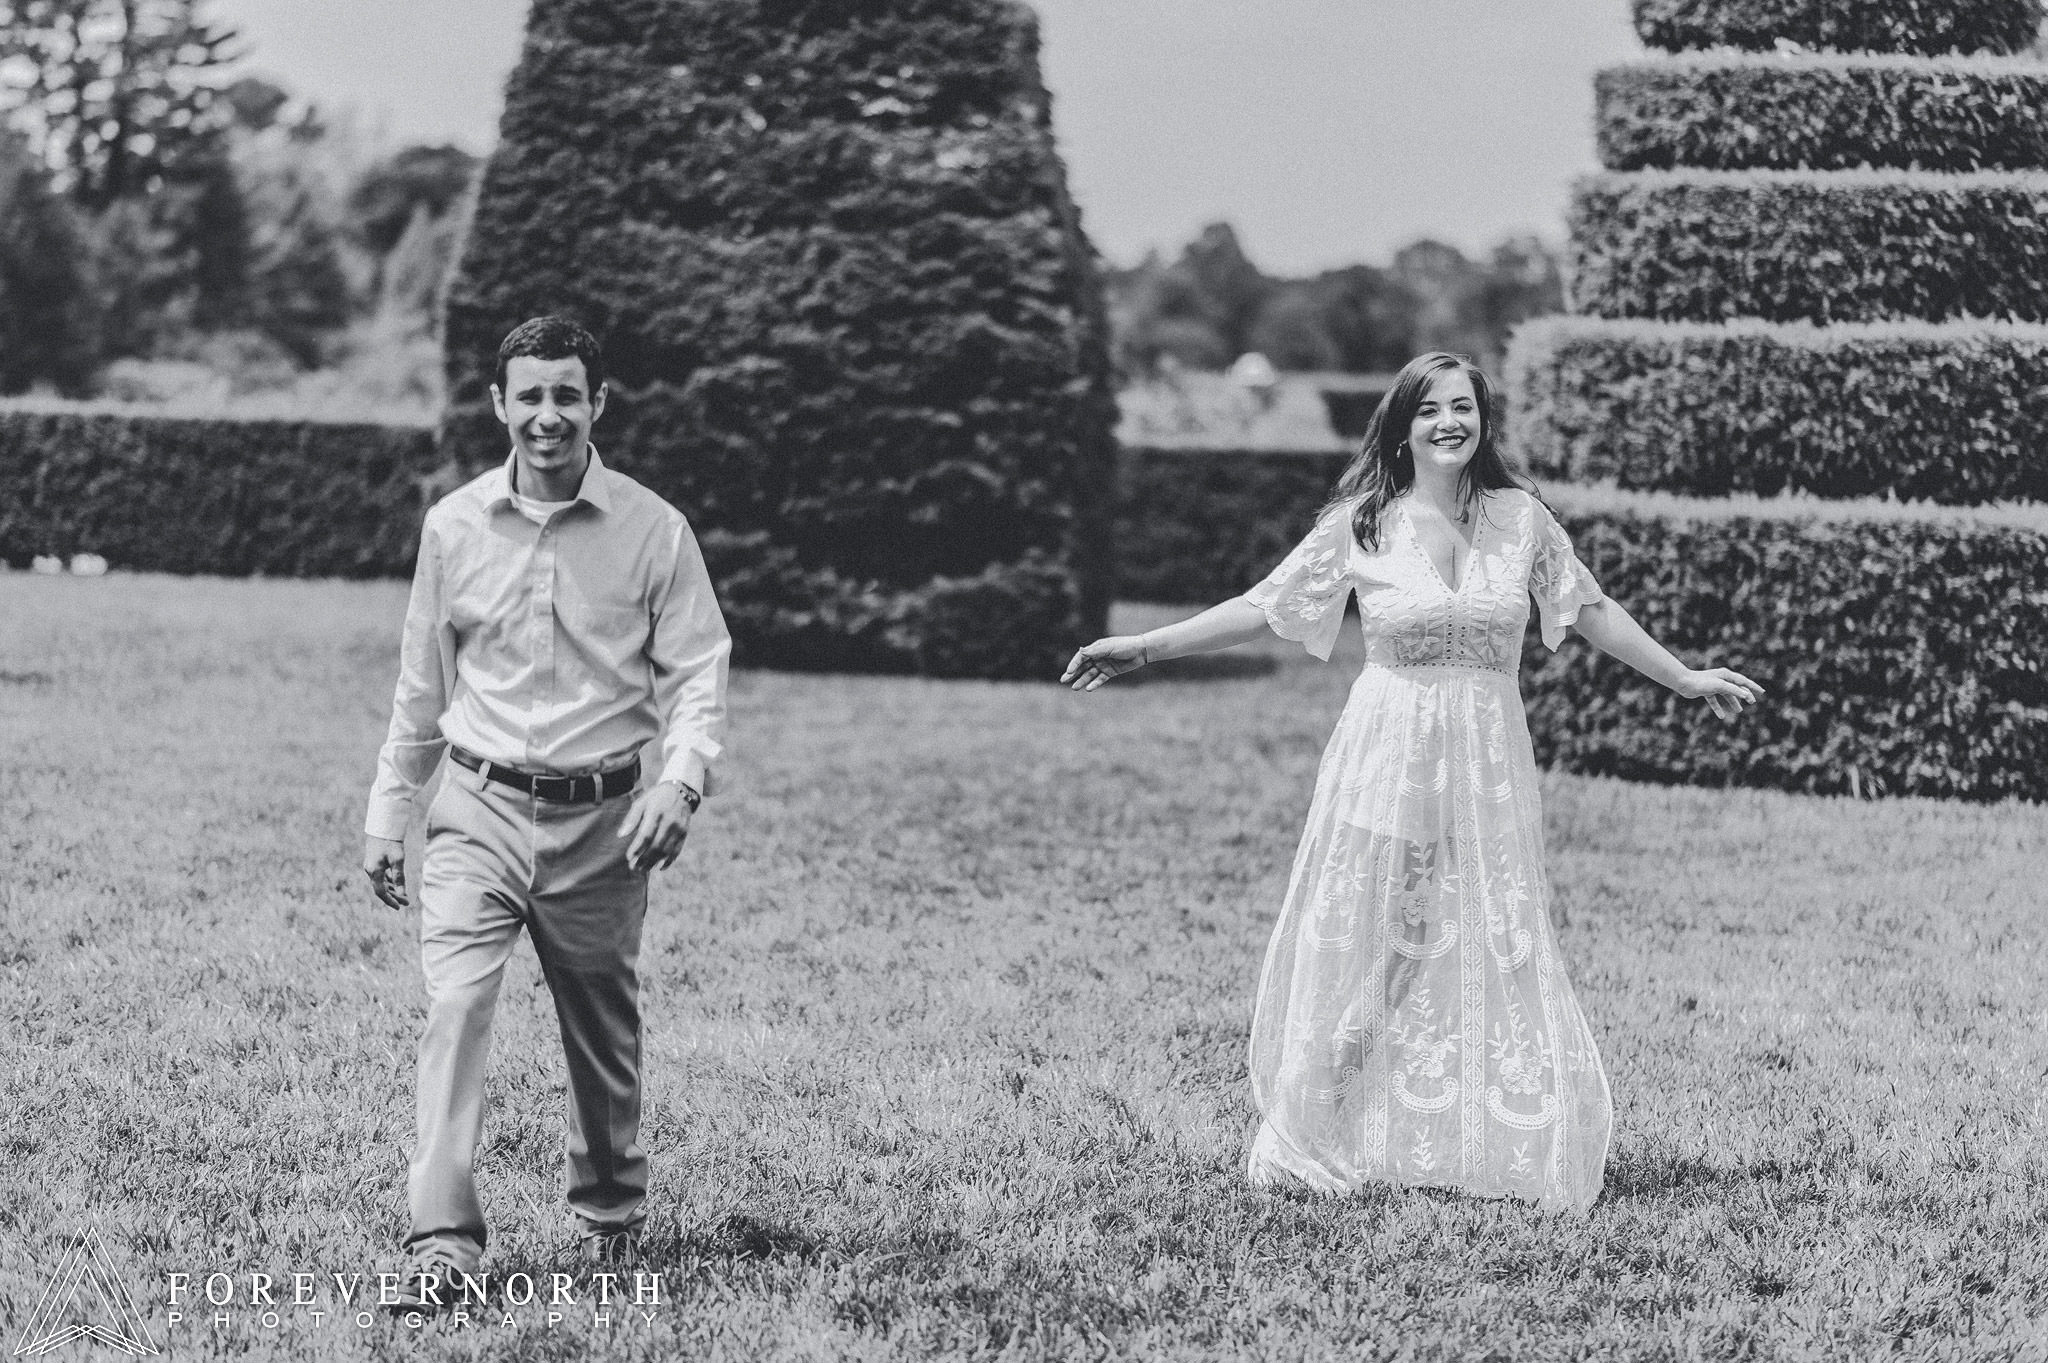 Longwood-Gardens-Engagement-Photos-07.JPG